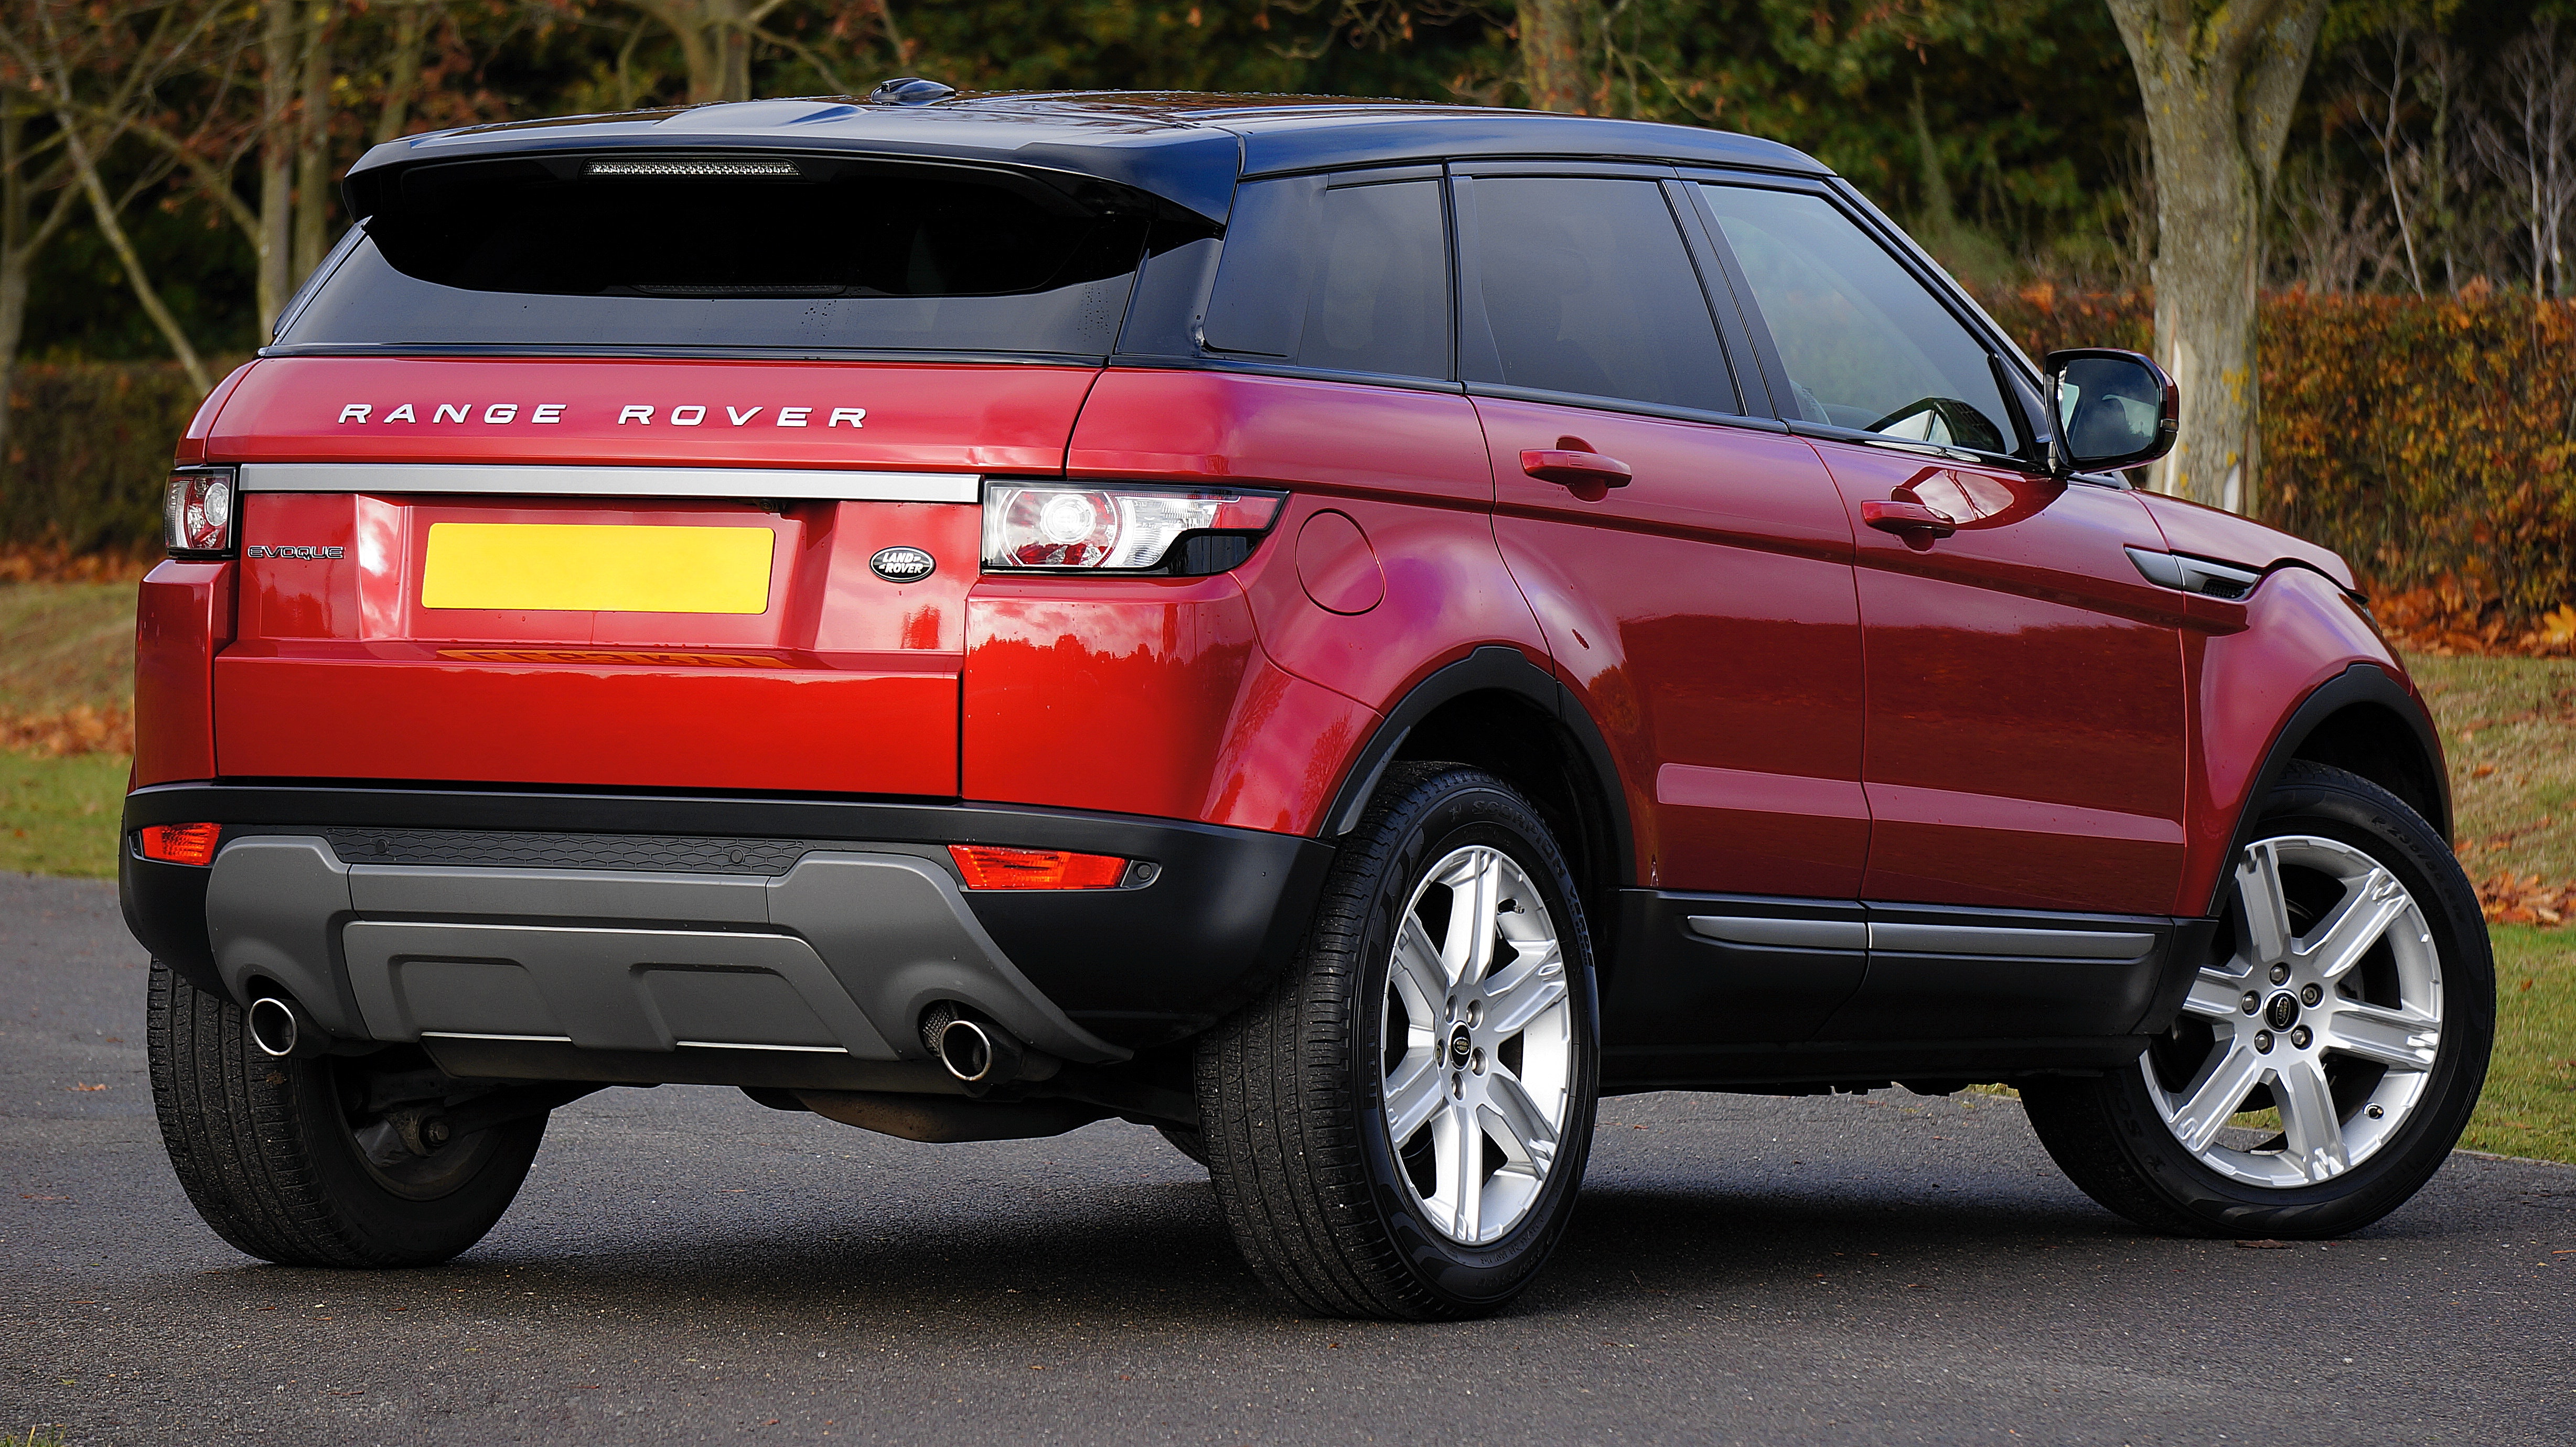 Red Land Rover Range Rover, Road, Range rover, Suv, Vehicle, HQ Photo